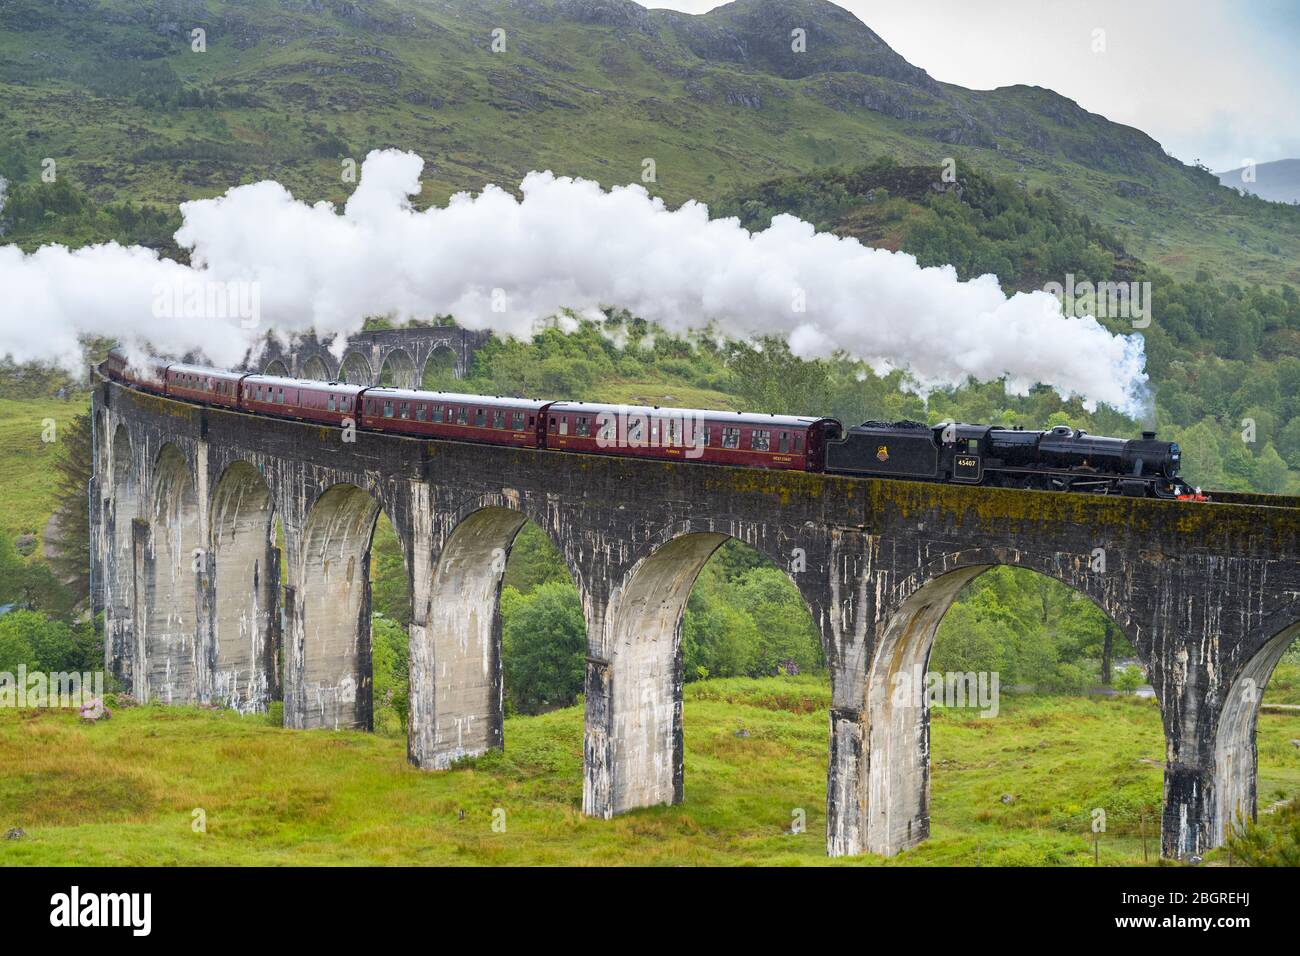 'The Jacobite' locomotive steam train on West Highland Rail crosses famous Glenfinnan Viaduct tourist spot in the Highlands of Scotland Stock Photo